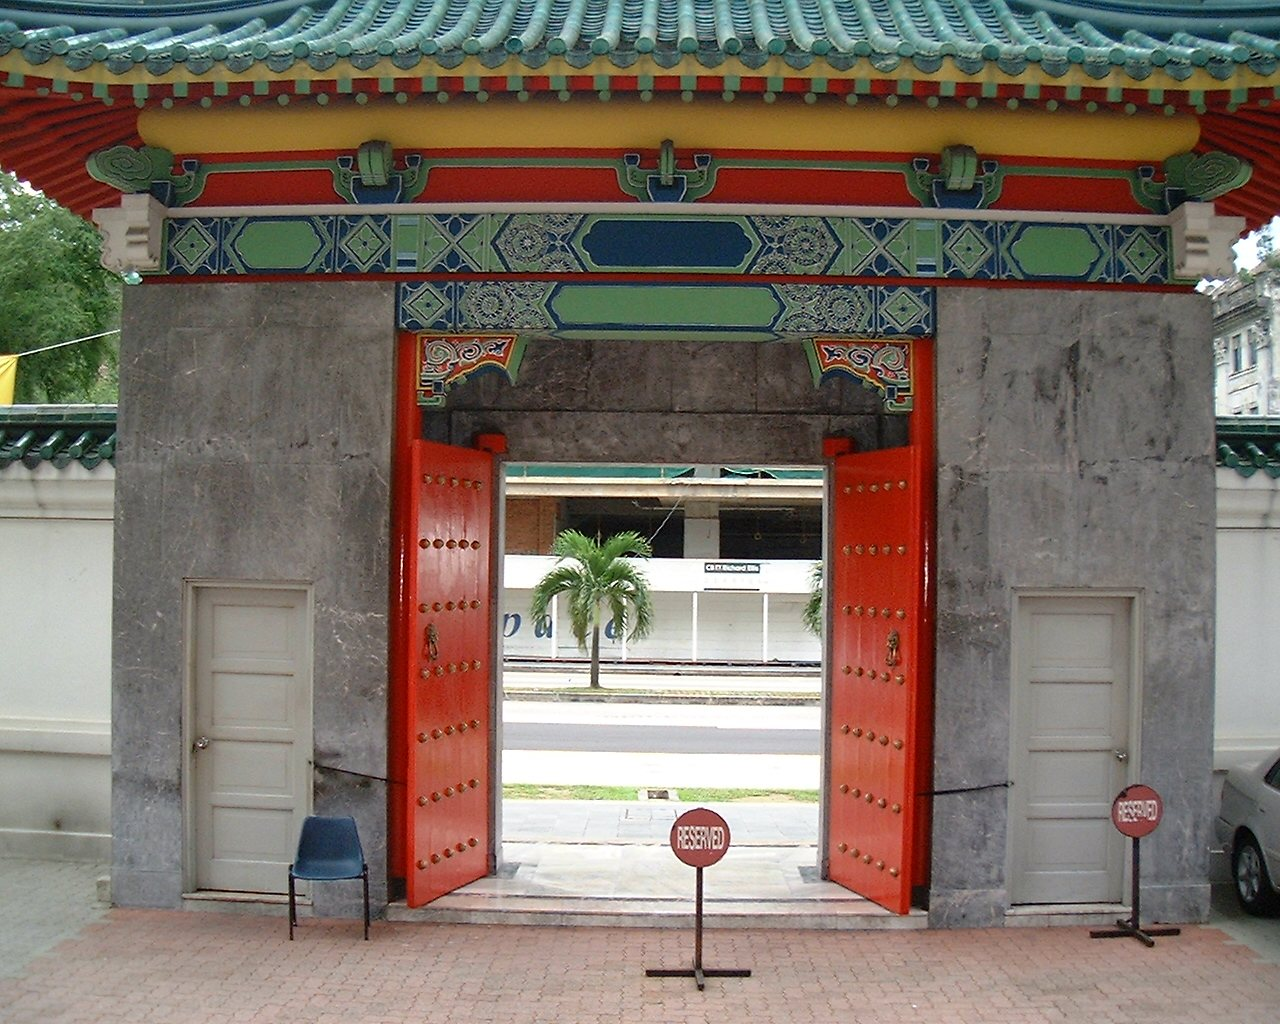 Another view of the main entrance gate (Back area)